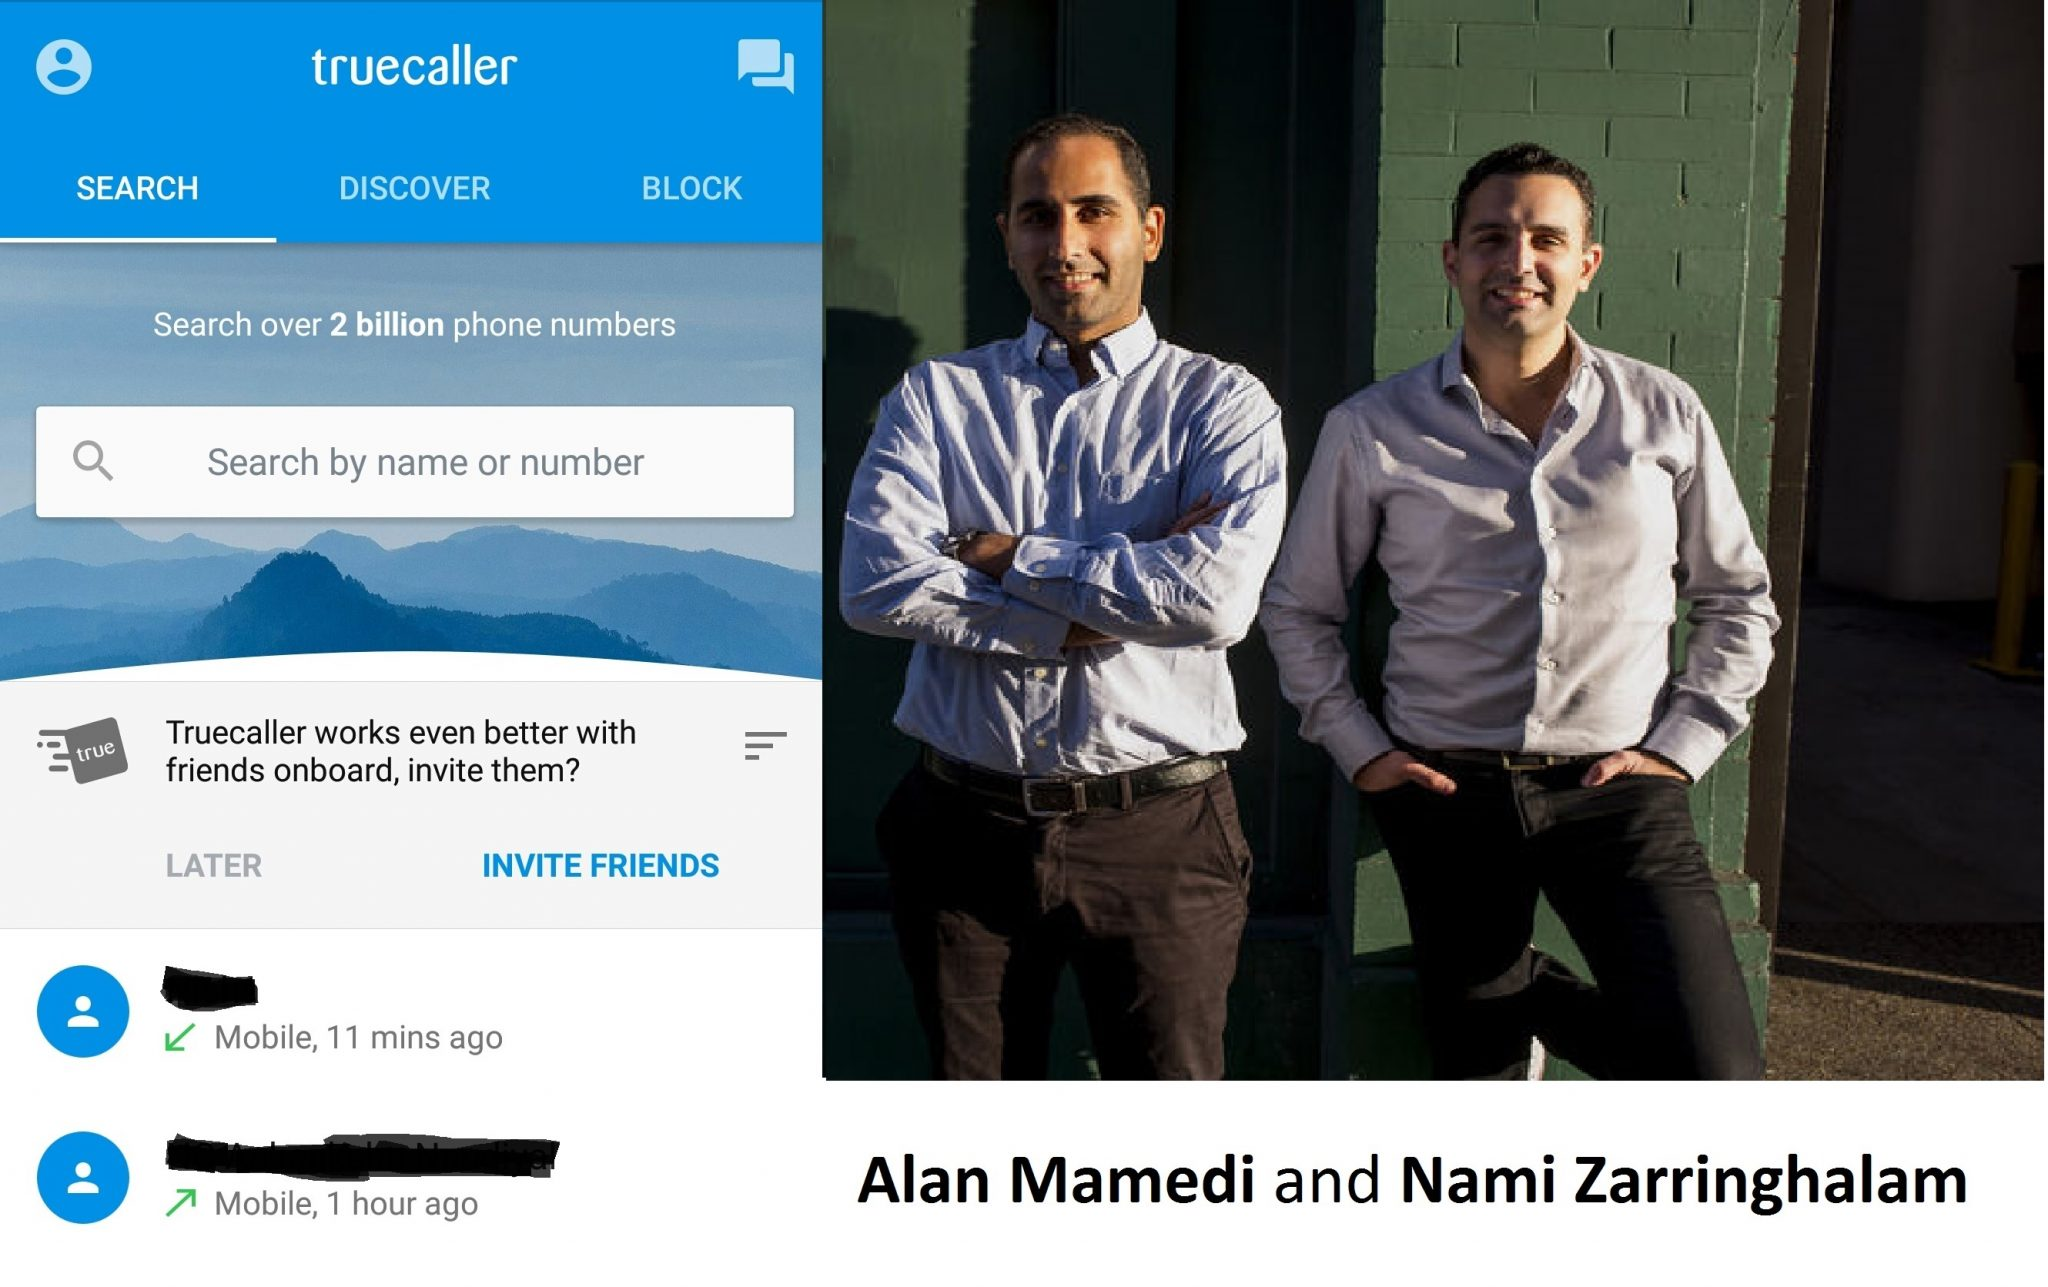 Alan Mamedi and Nami Zarringhalam truecaller